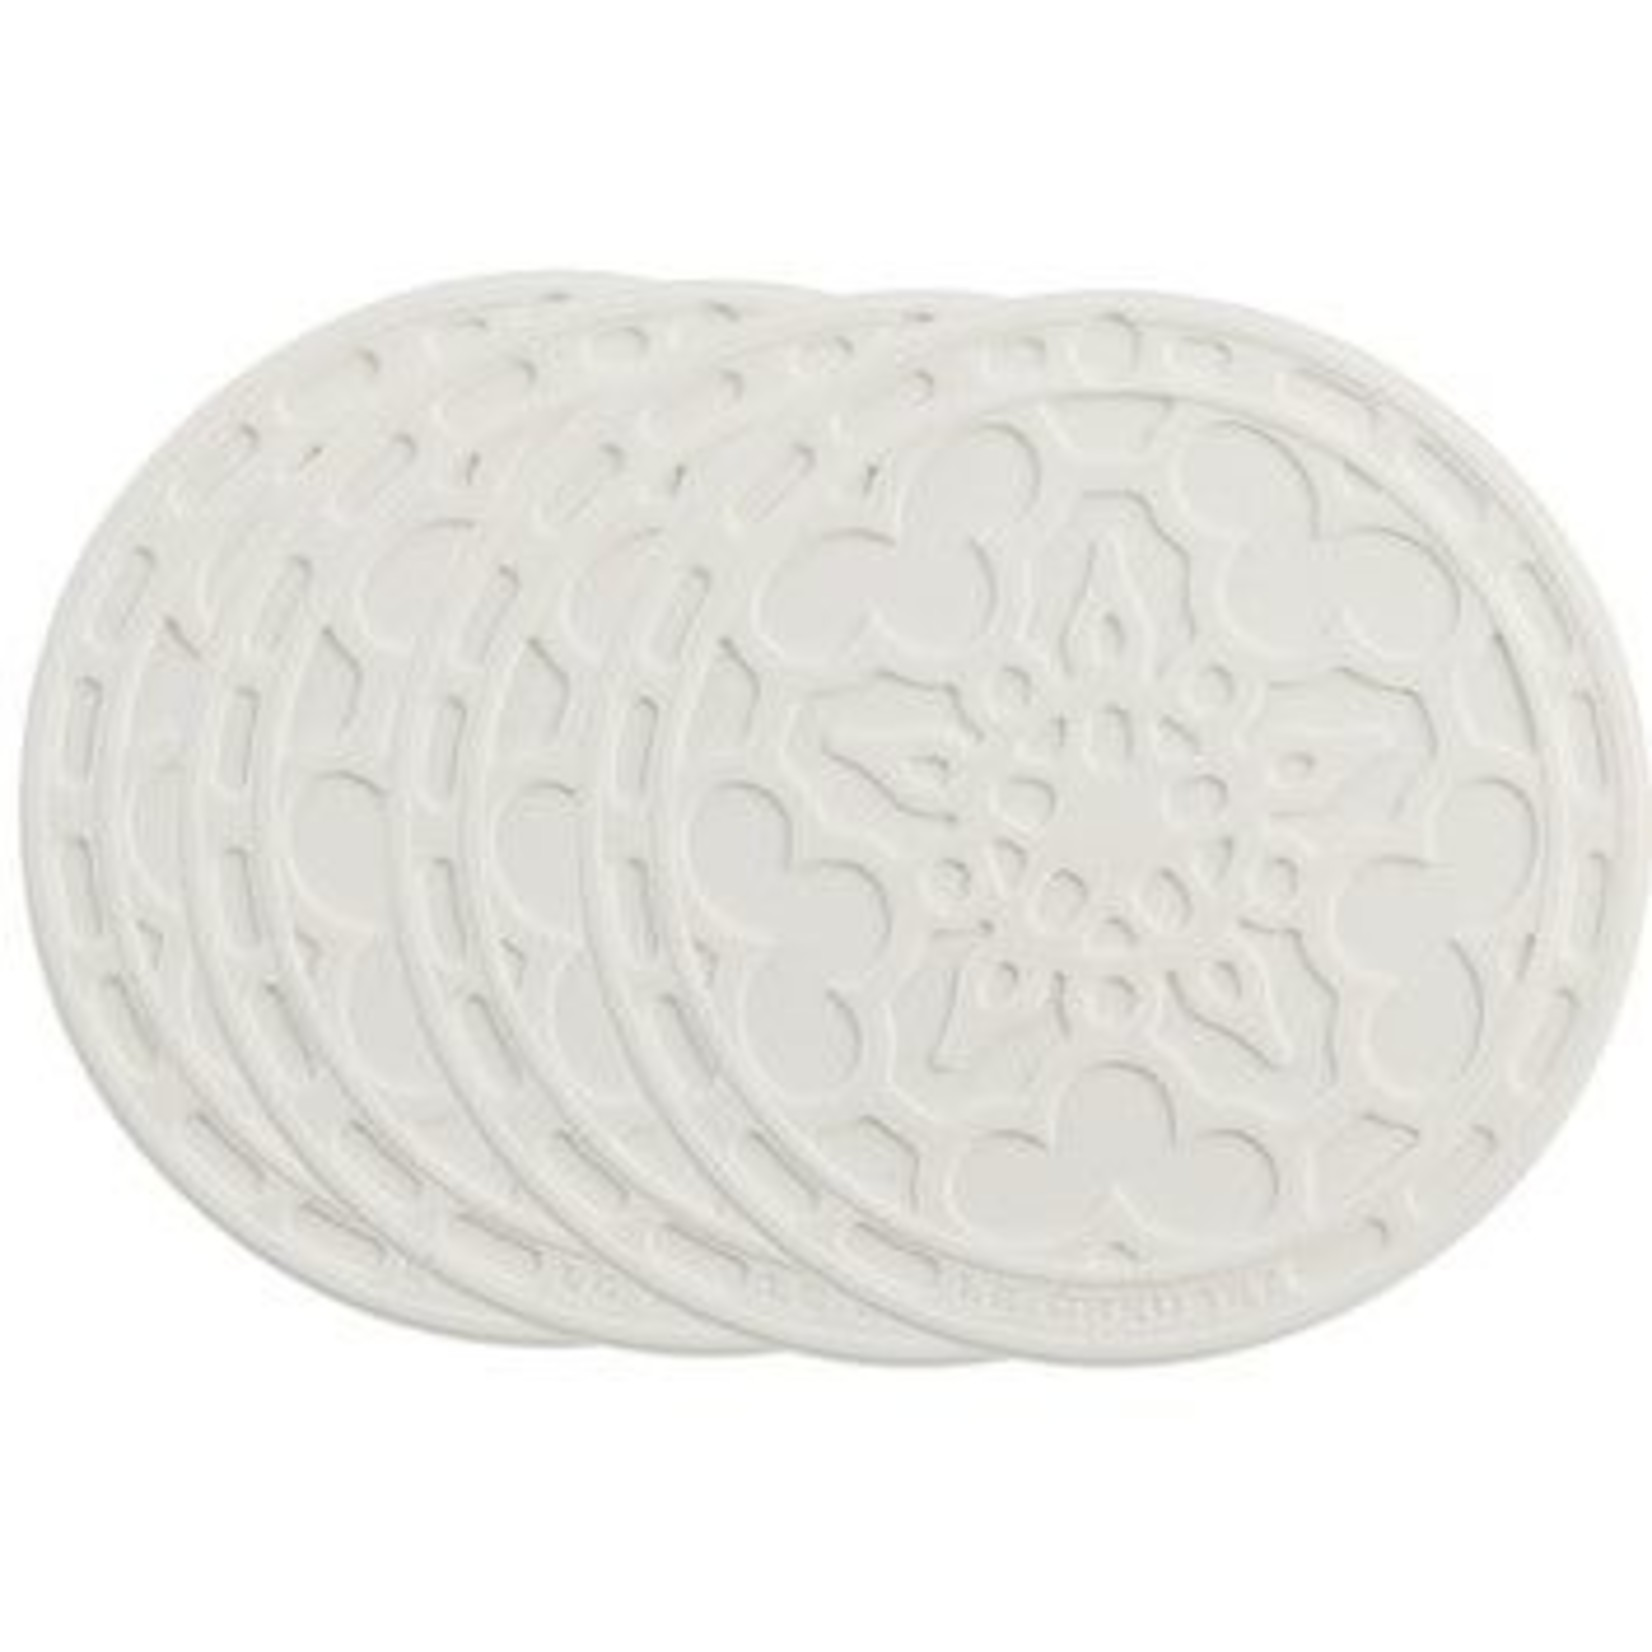 Le Creuset French Coasters - Set of 4